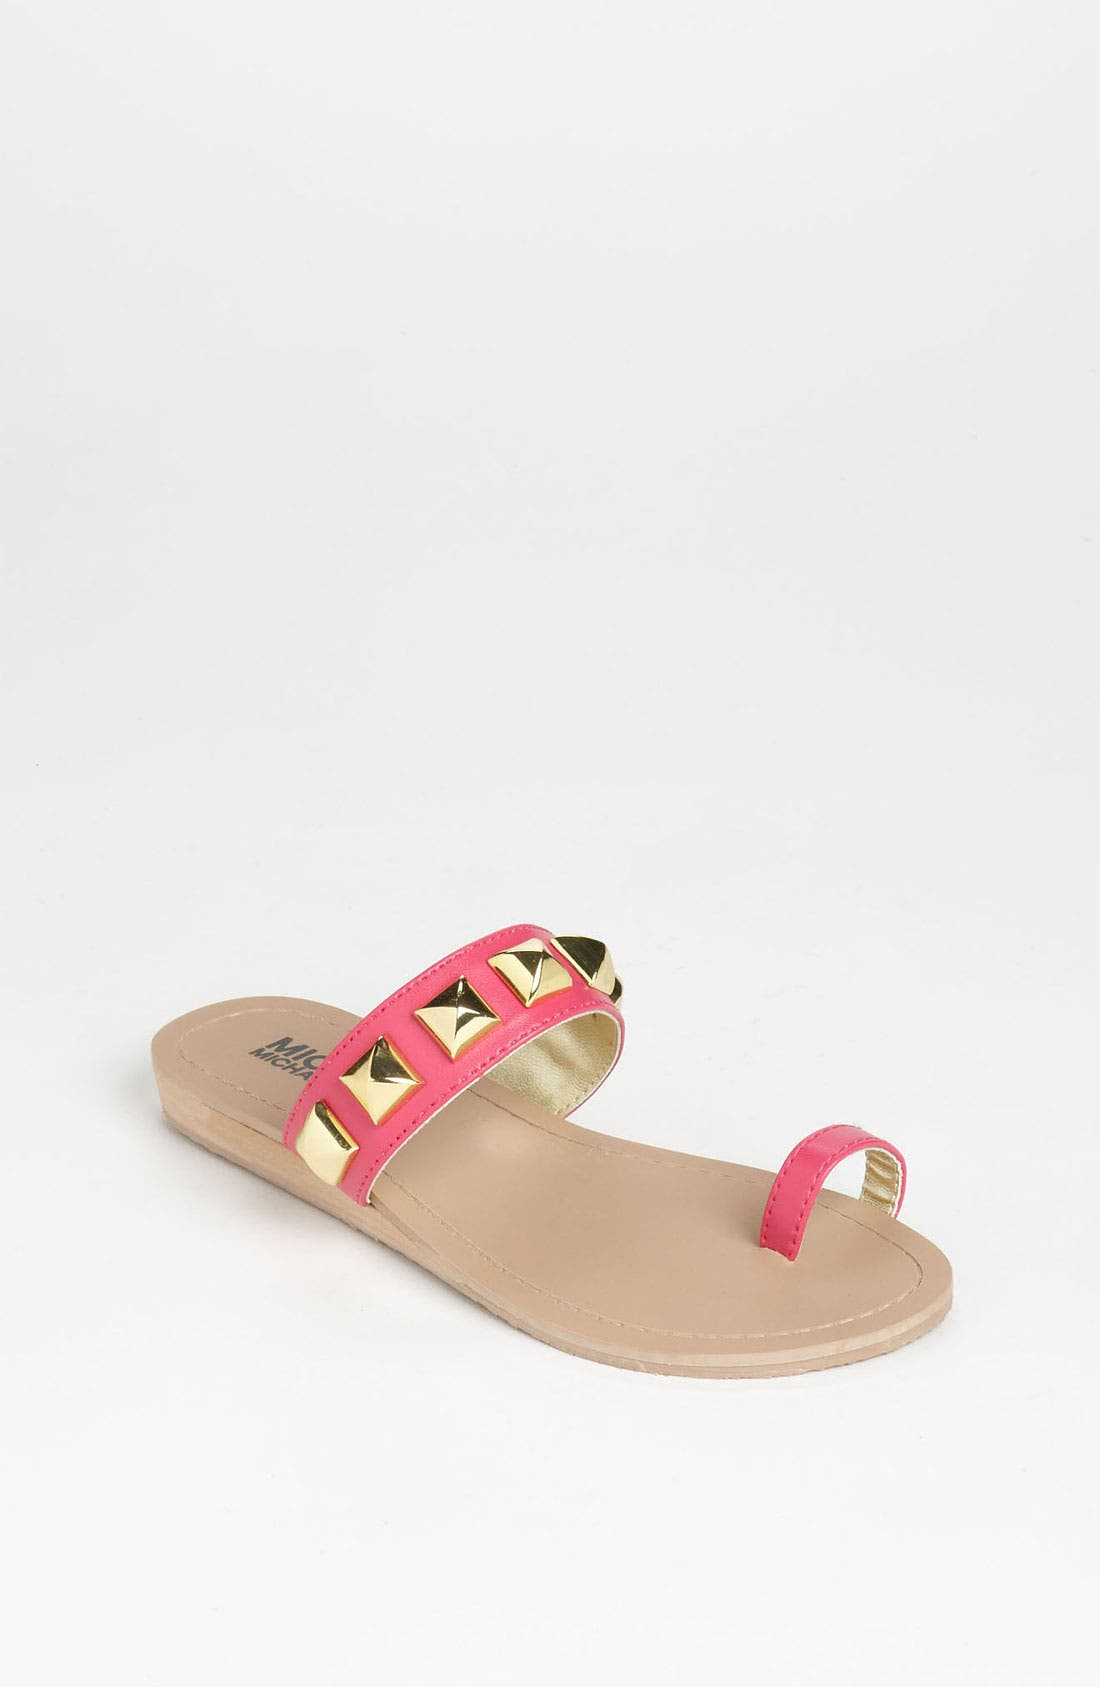 Alternate Image 1 Selected - MICHAEL Michael Kors 'Zen' Sandal (Little Kid & Big Kid)